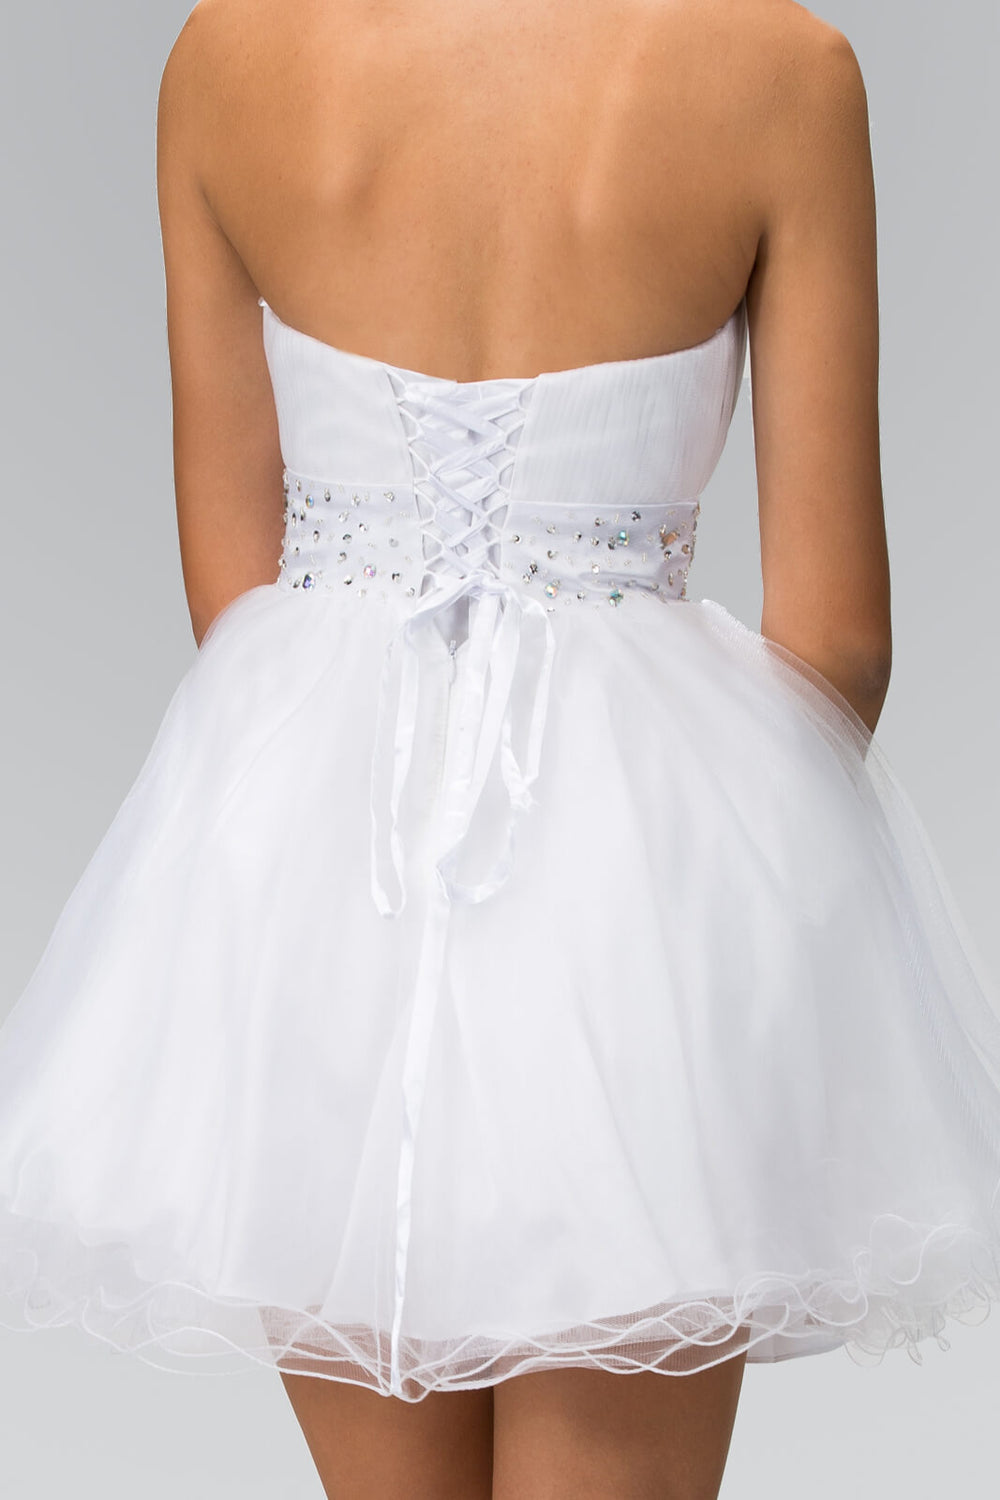 Strapless Sweetheart Prom Short Dress - The Dress Outlet